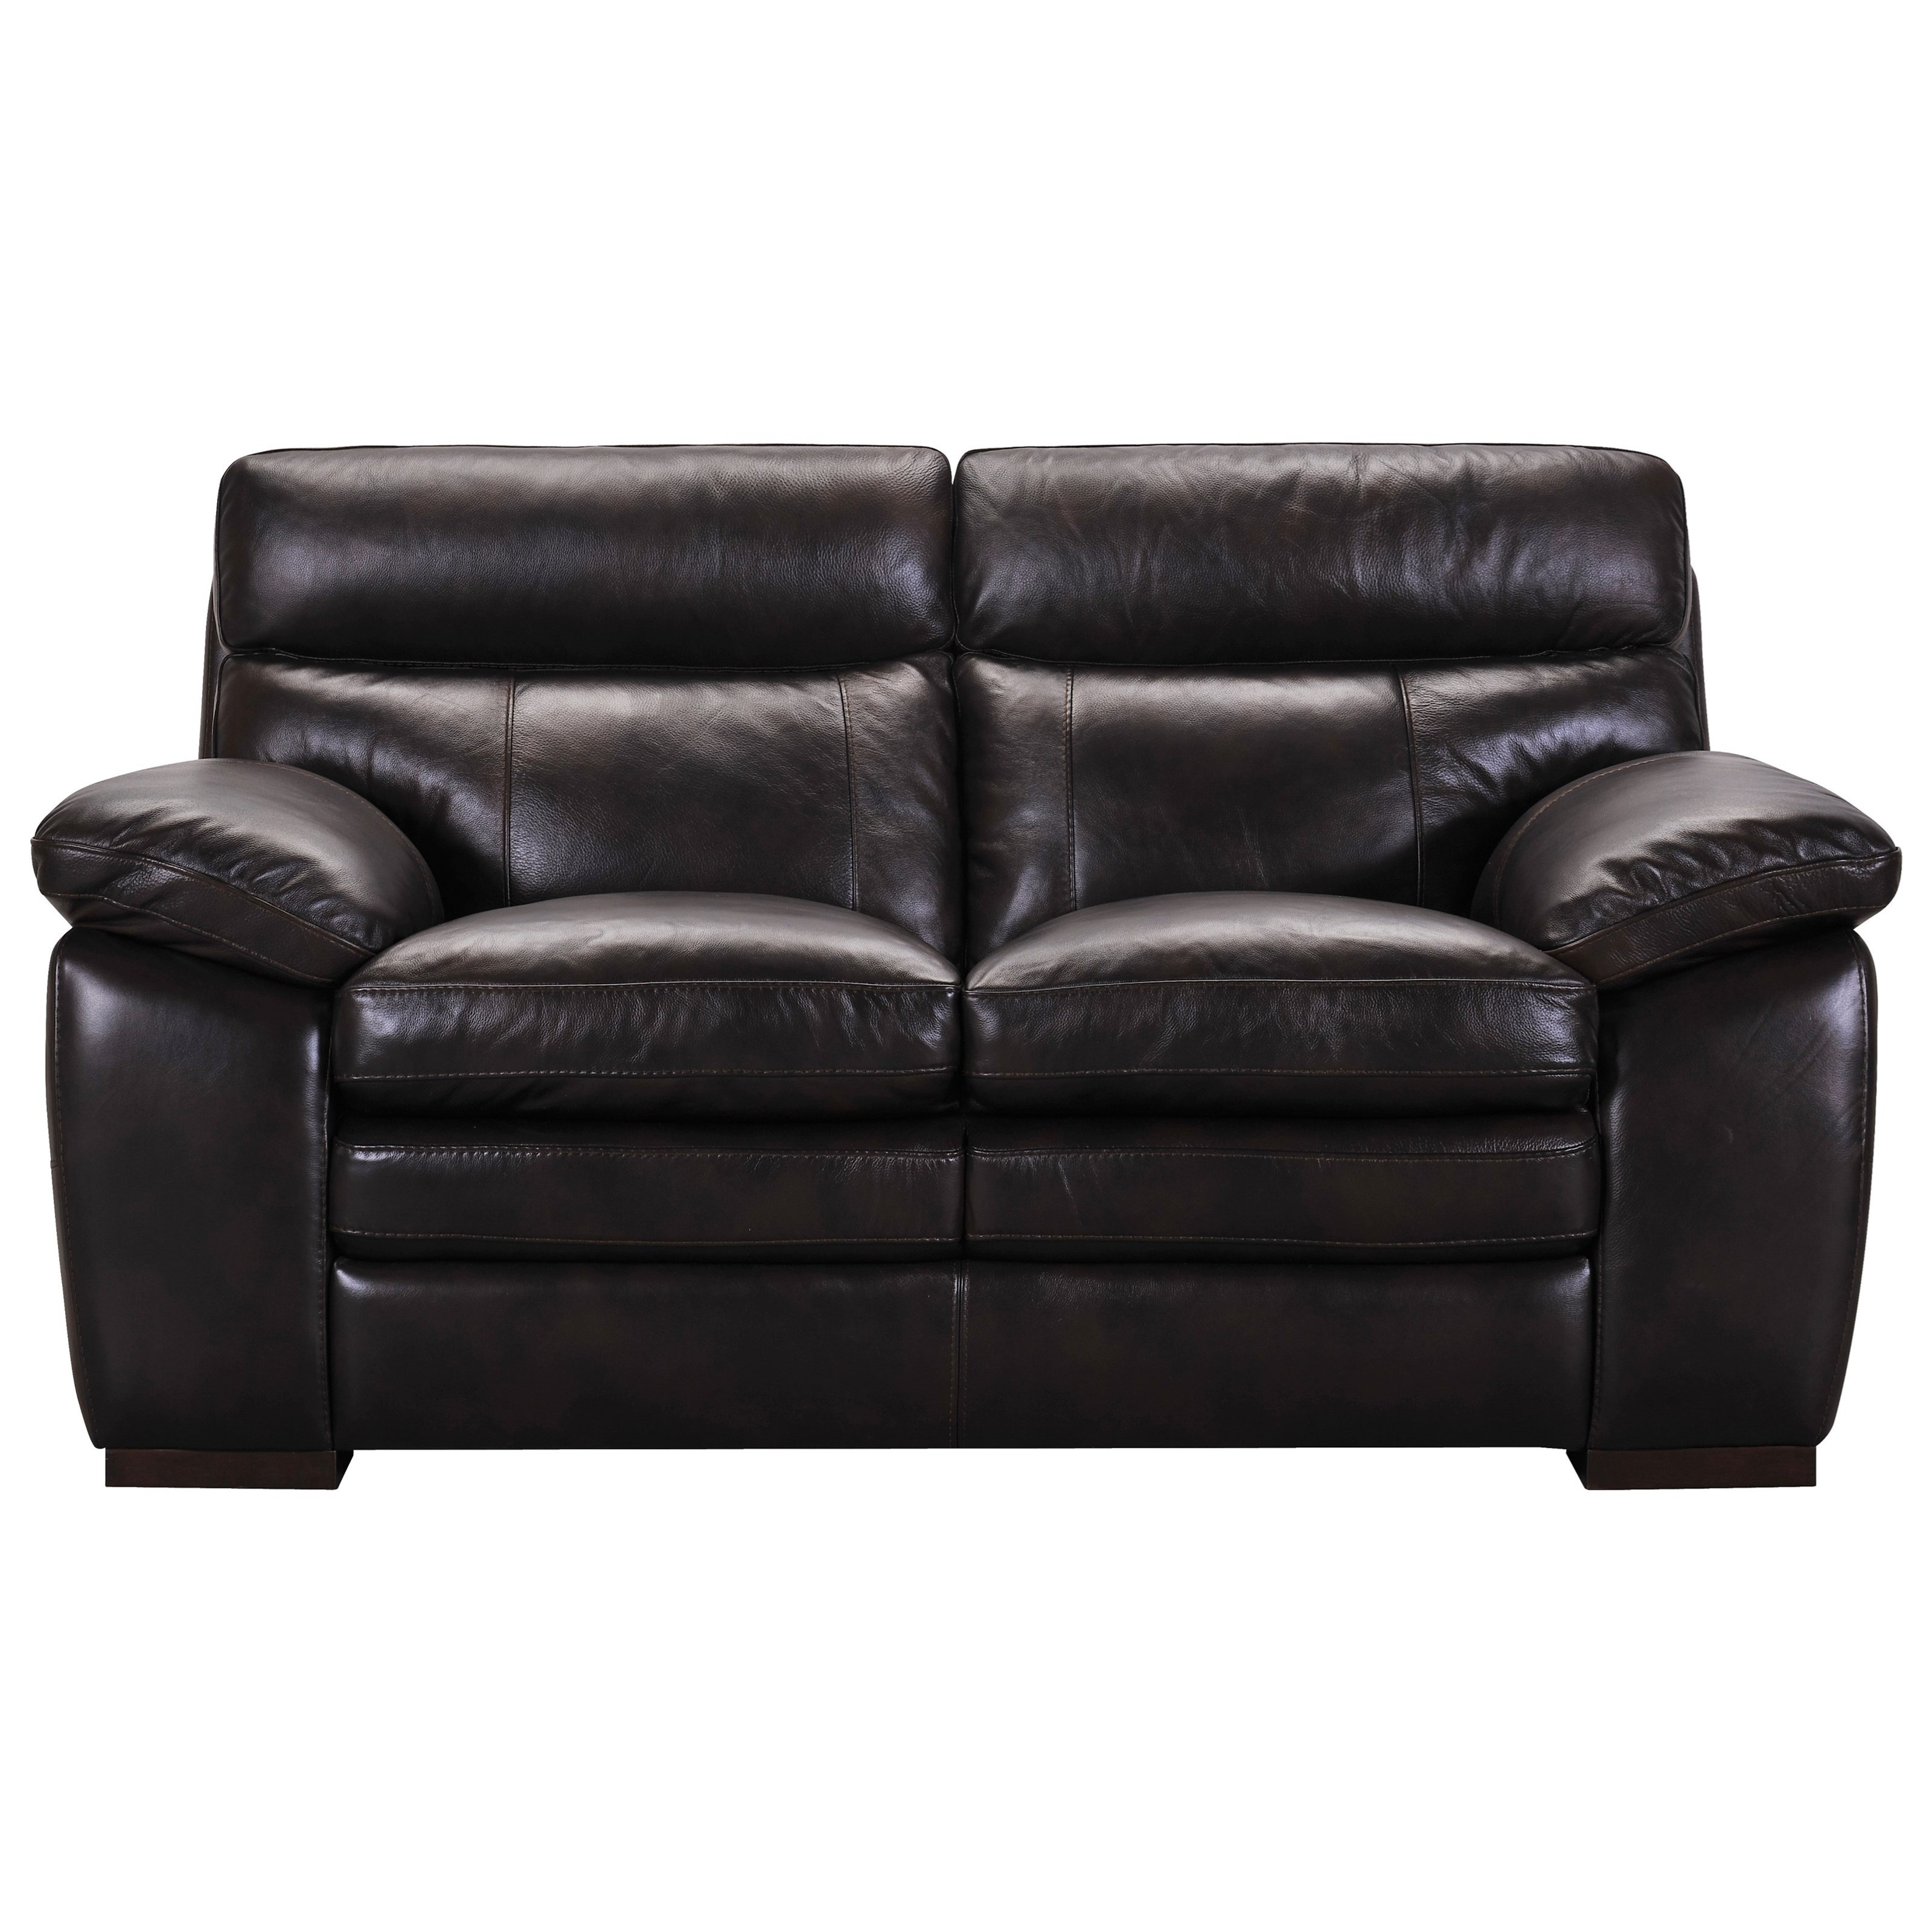 3658 Loveseat by Violino at Furniture Superstore - Rochester, MN